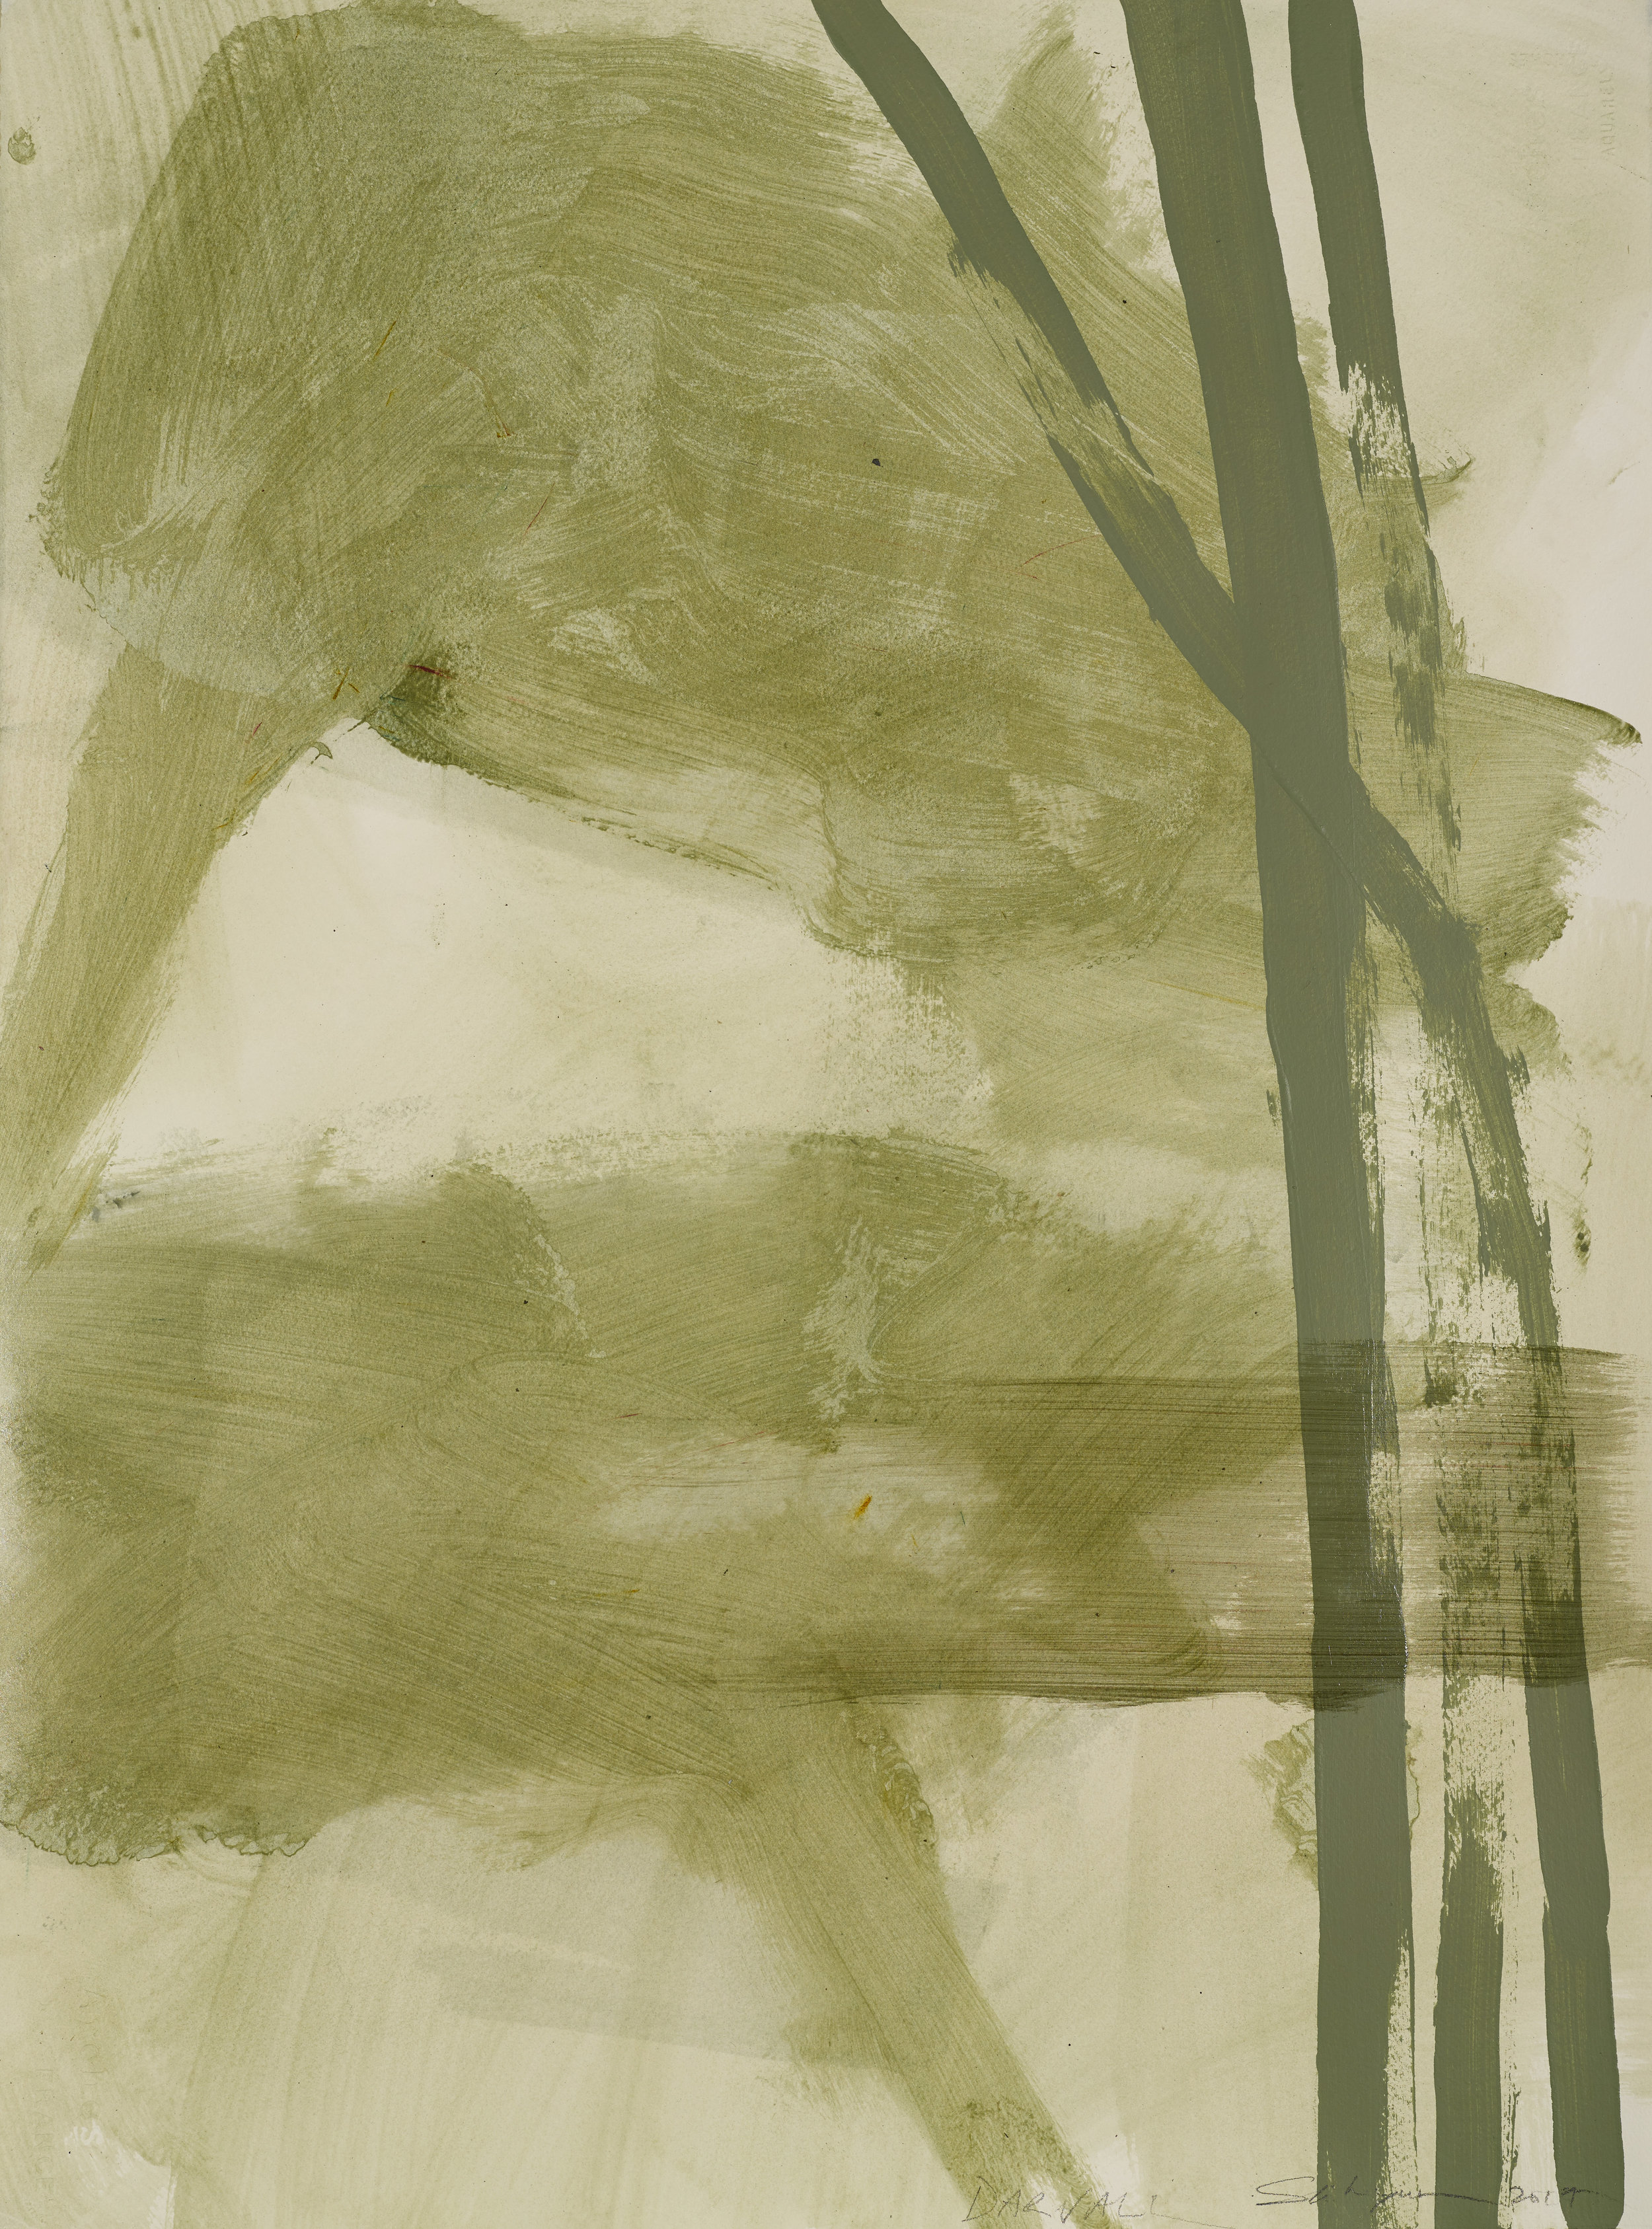 Green lotus  Collaboration Jo Darvall and Yeo Shih Yun 2017  pigment on acrylic on linen  76cm x 56cm   enquiries contact Art Forum